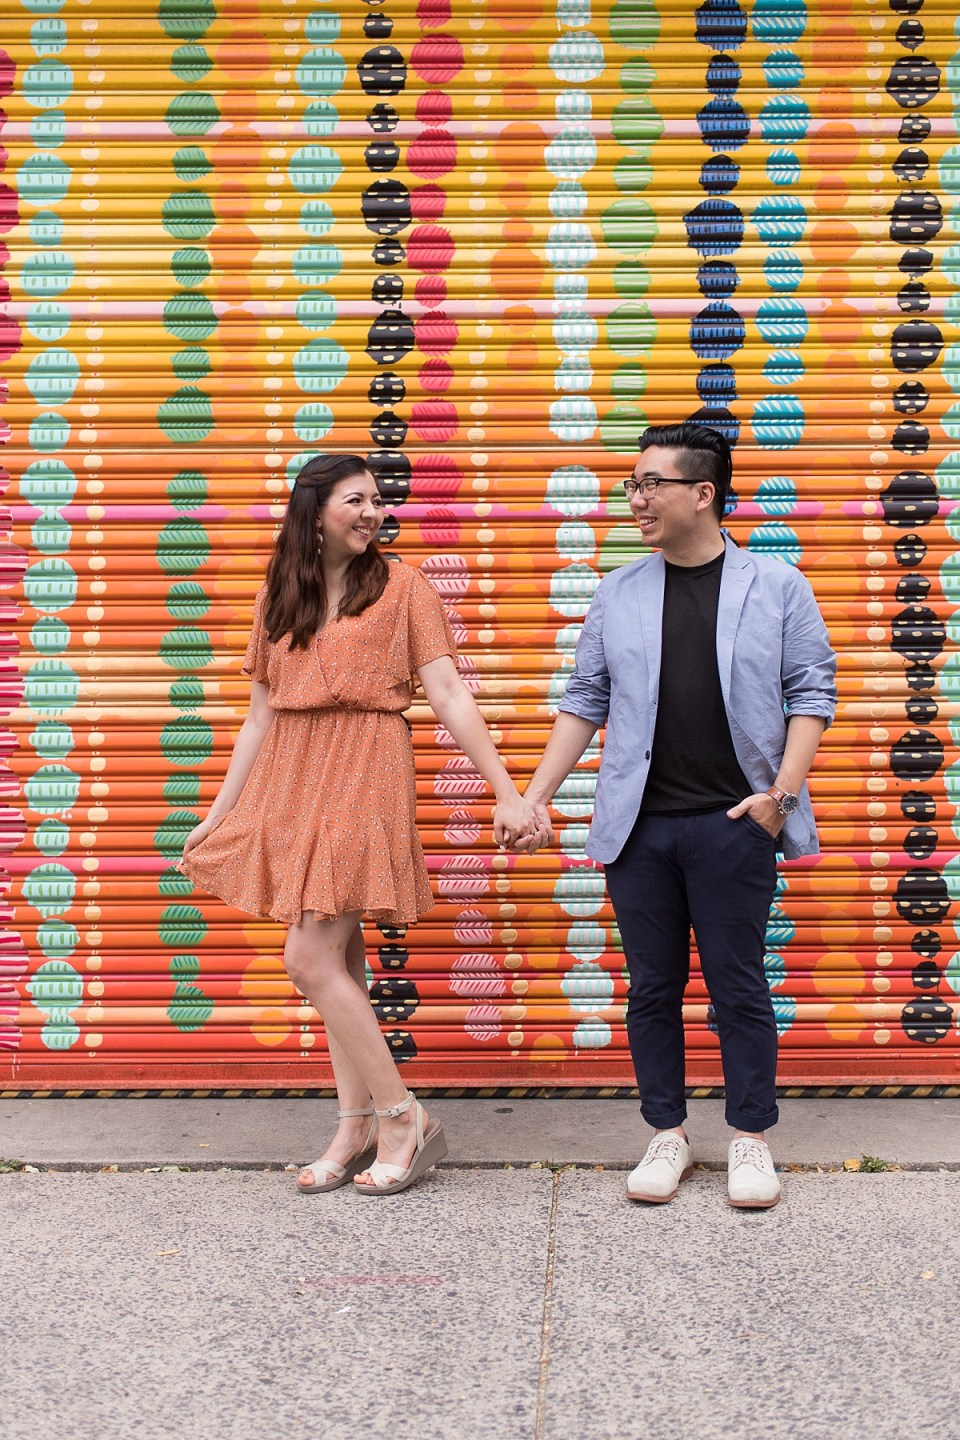 Engagement Session at the Torpedo Facotry in Alexandria, VA by Enagement Photographer, Erin Tetterton